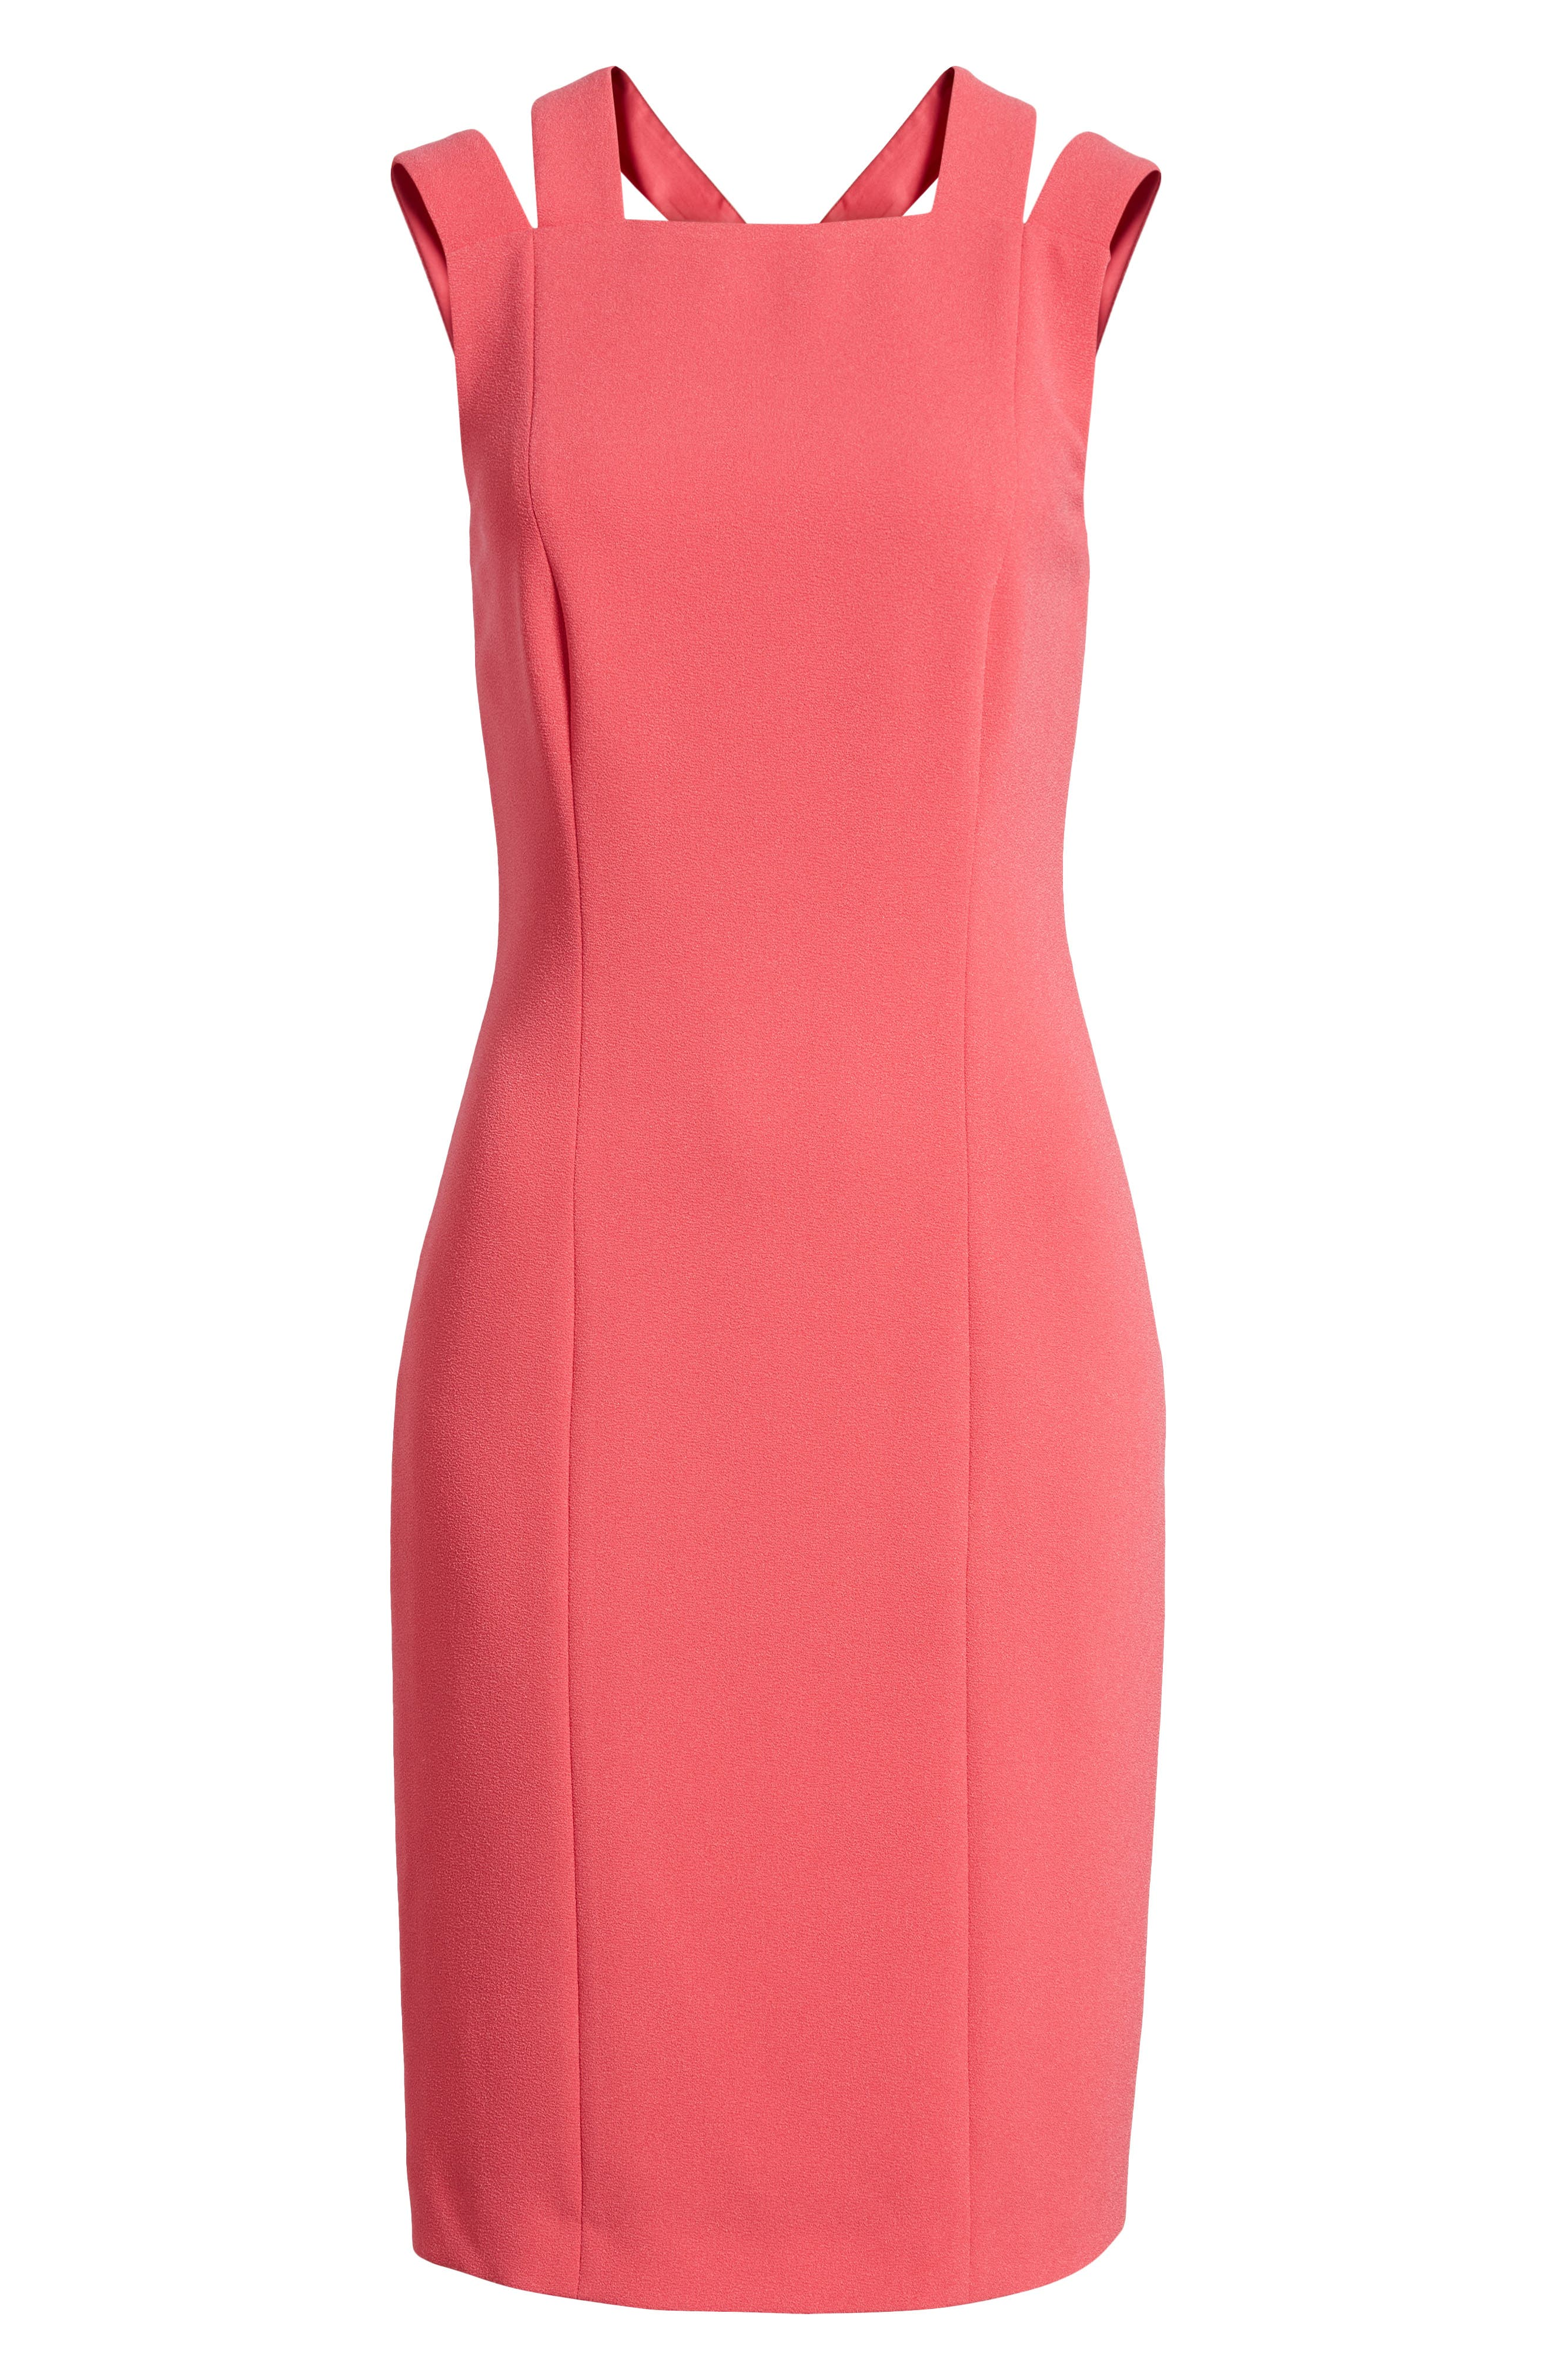 Daphima Compact Crepe Sheath Dress,                             Alternate thumbnail 7, color,                             Lychee Pink